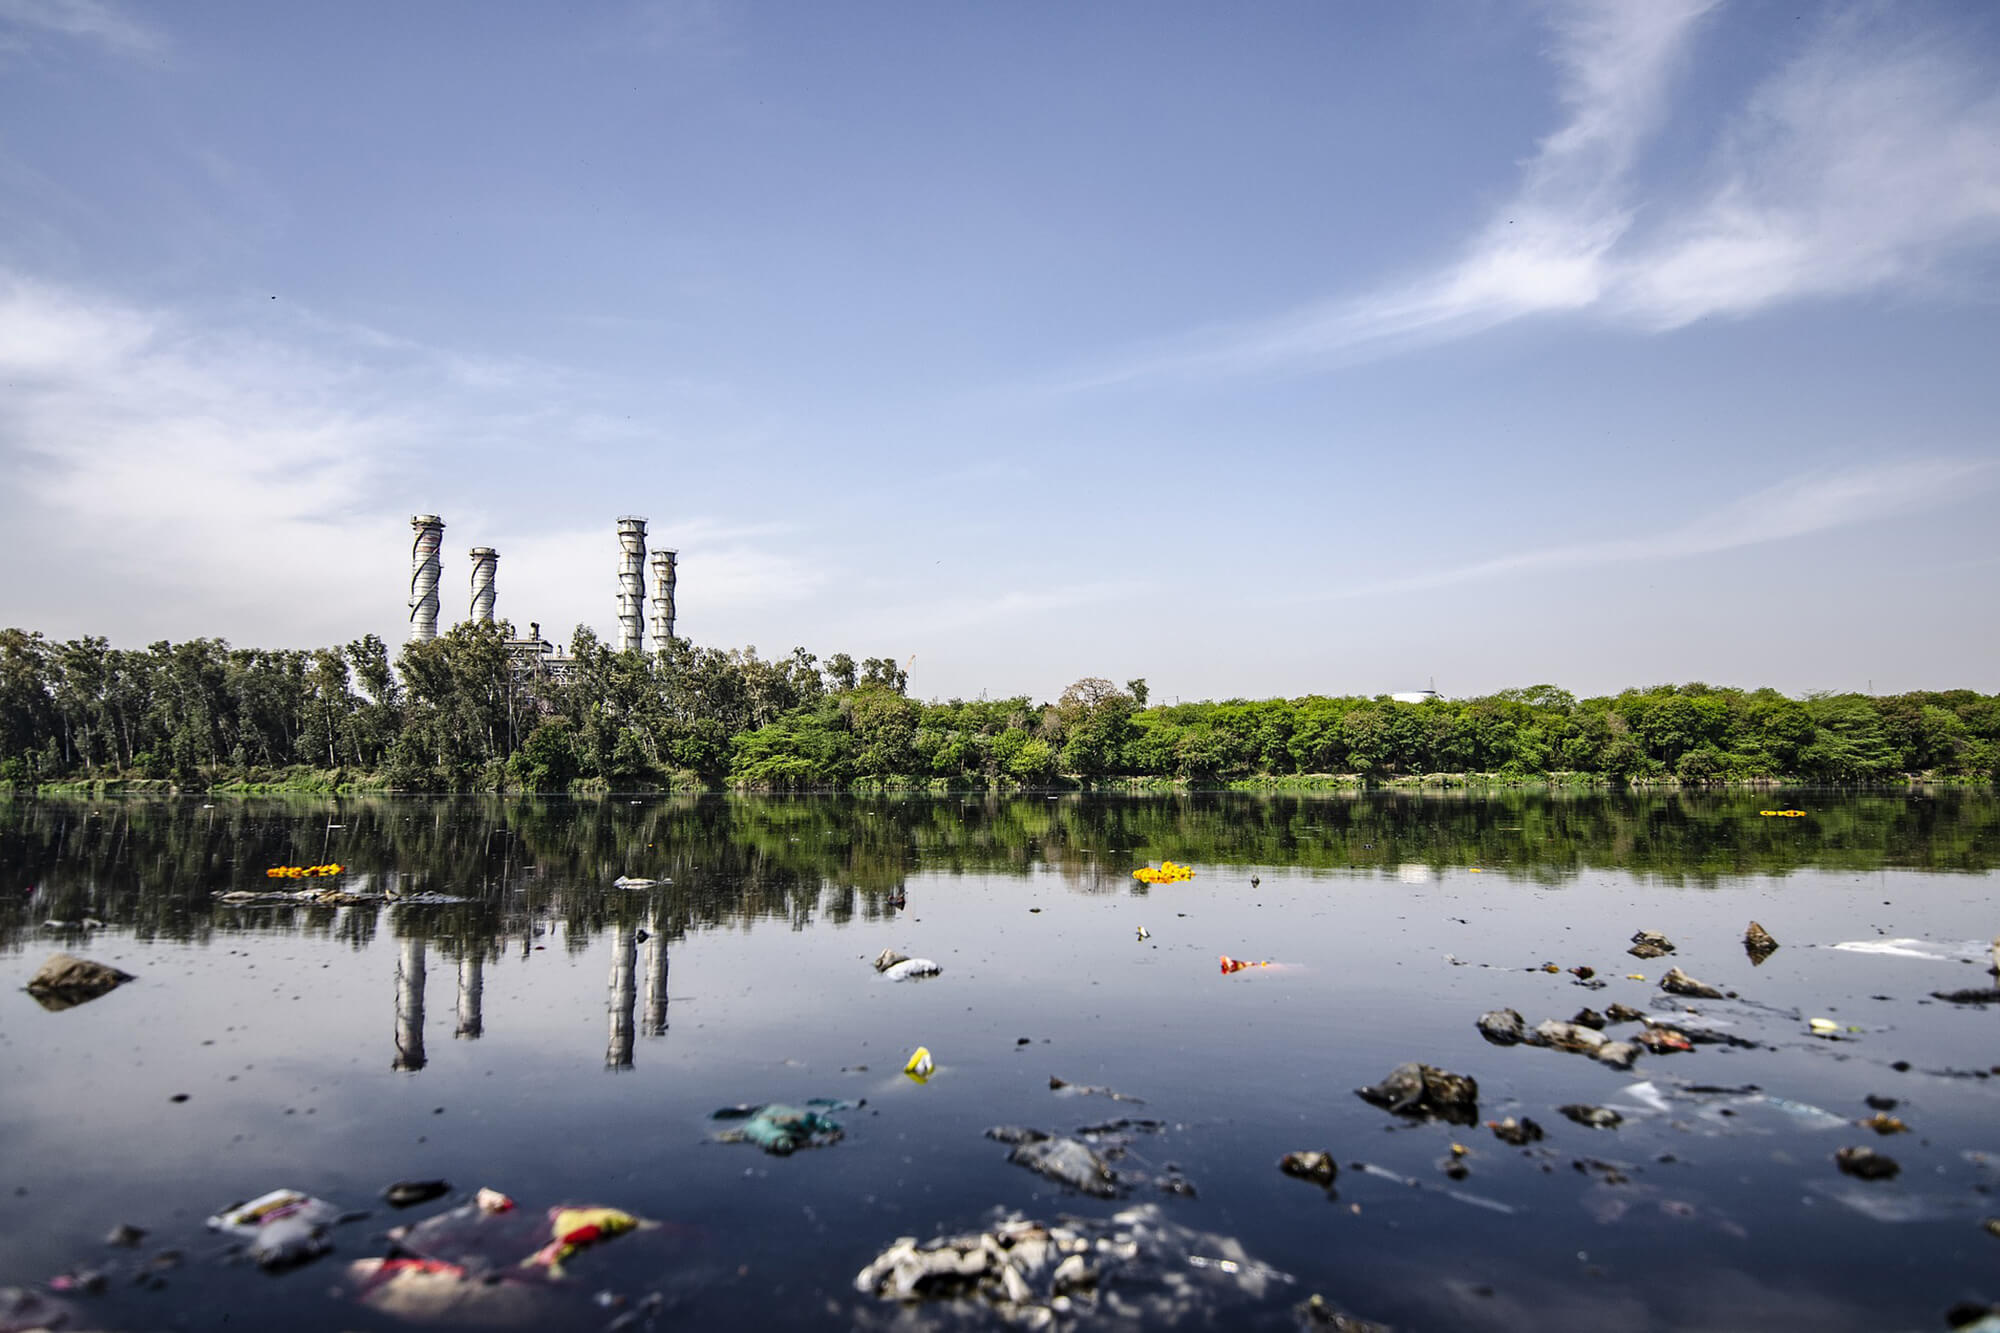 polluted water with rubbish and a factory in the background across the river